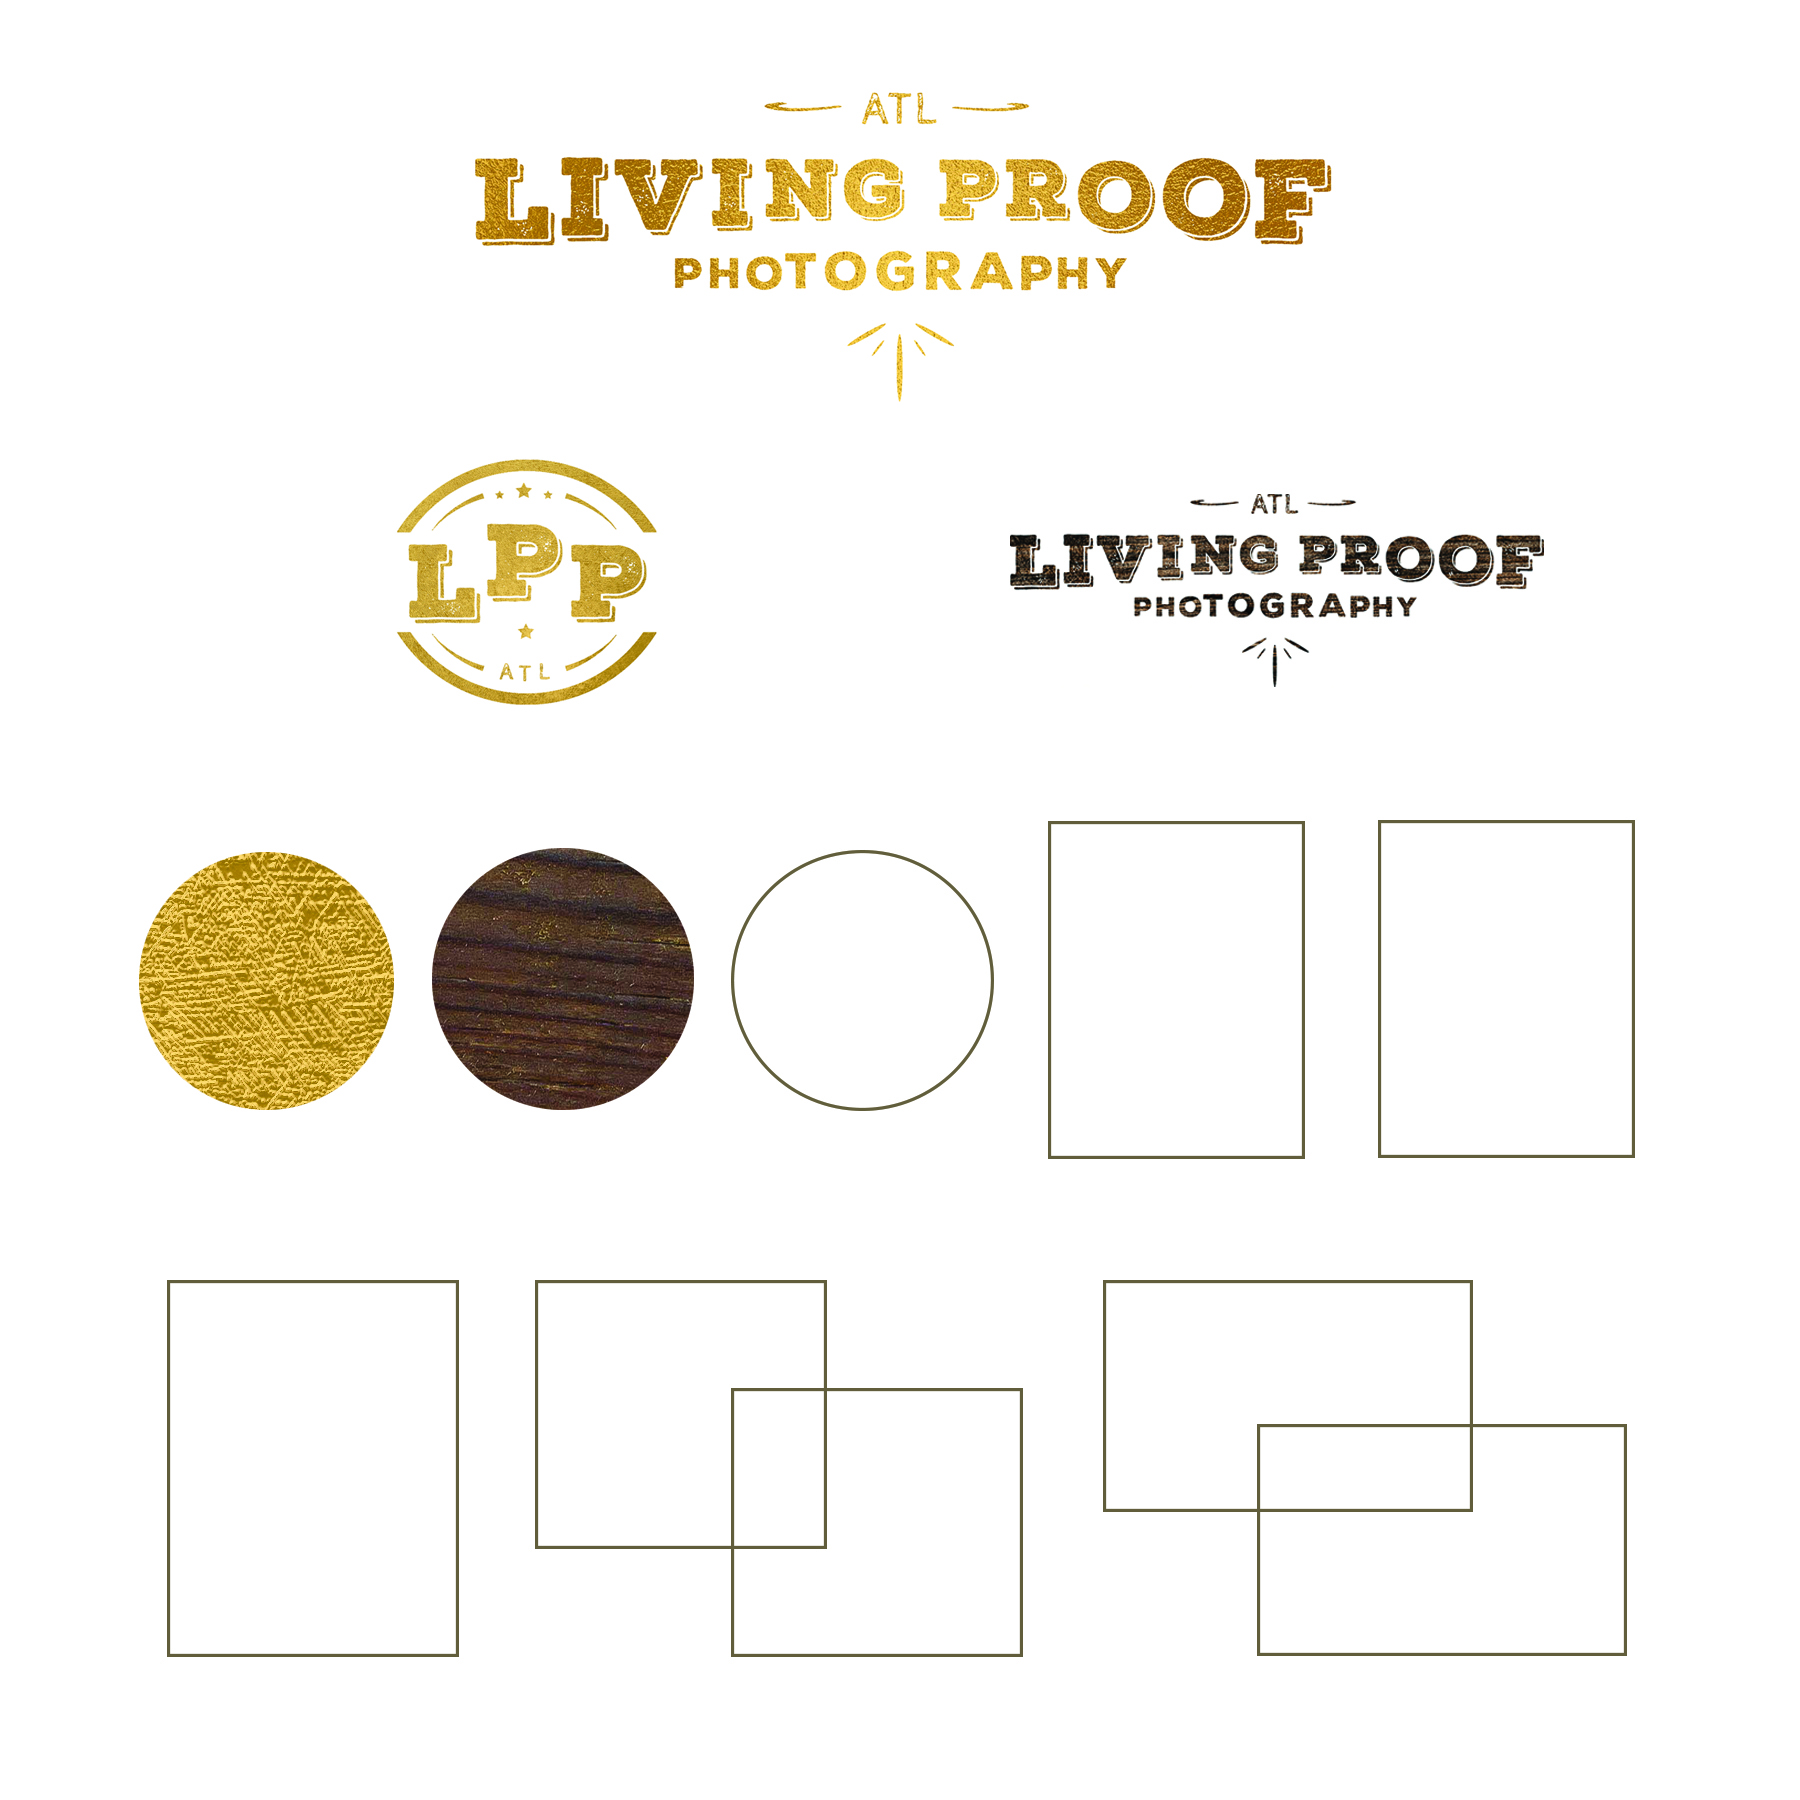 Branding: Living Proof Photography